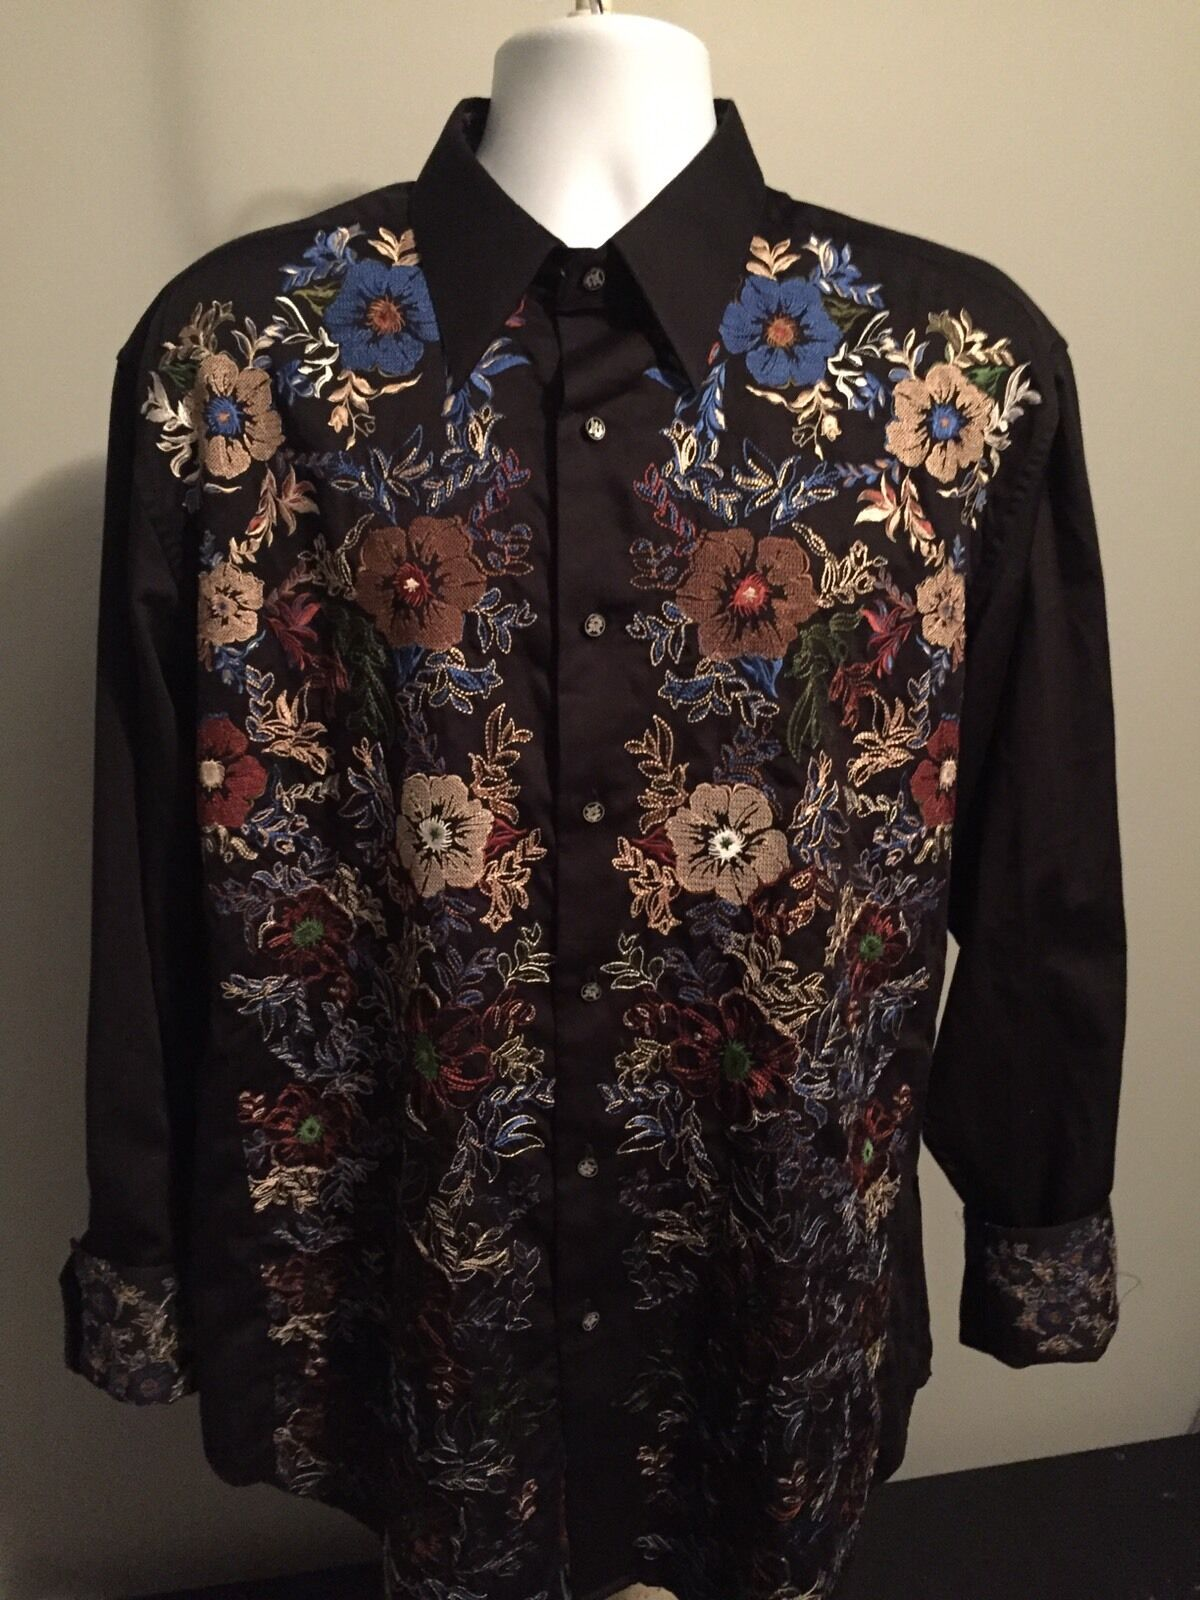 EUC ROBERT GRAHAM Sz. XL Men's Black Embroidered Shirt RN#81913 CA#26689